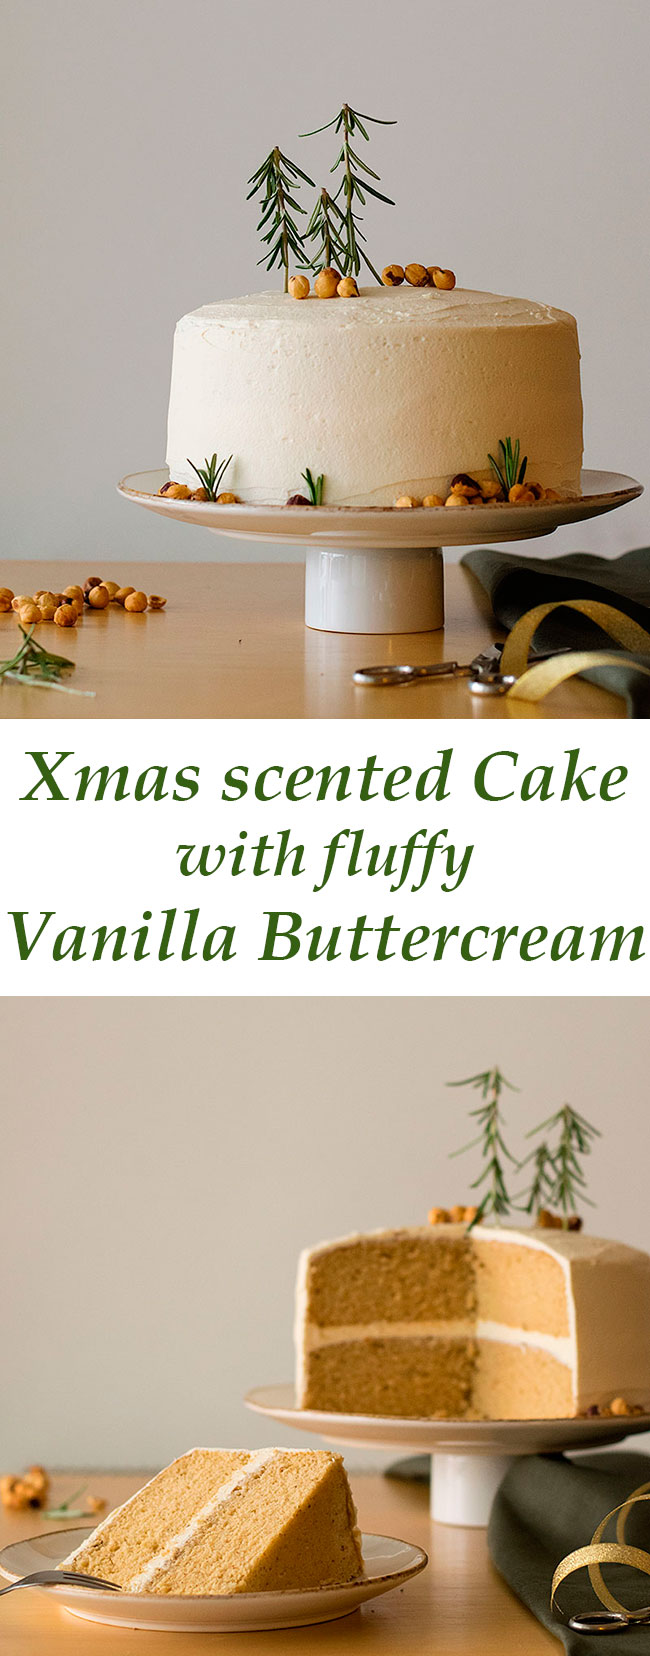 xmas-scented-cake-with-fluffy-vanilla-buttercream-6